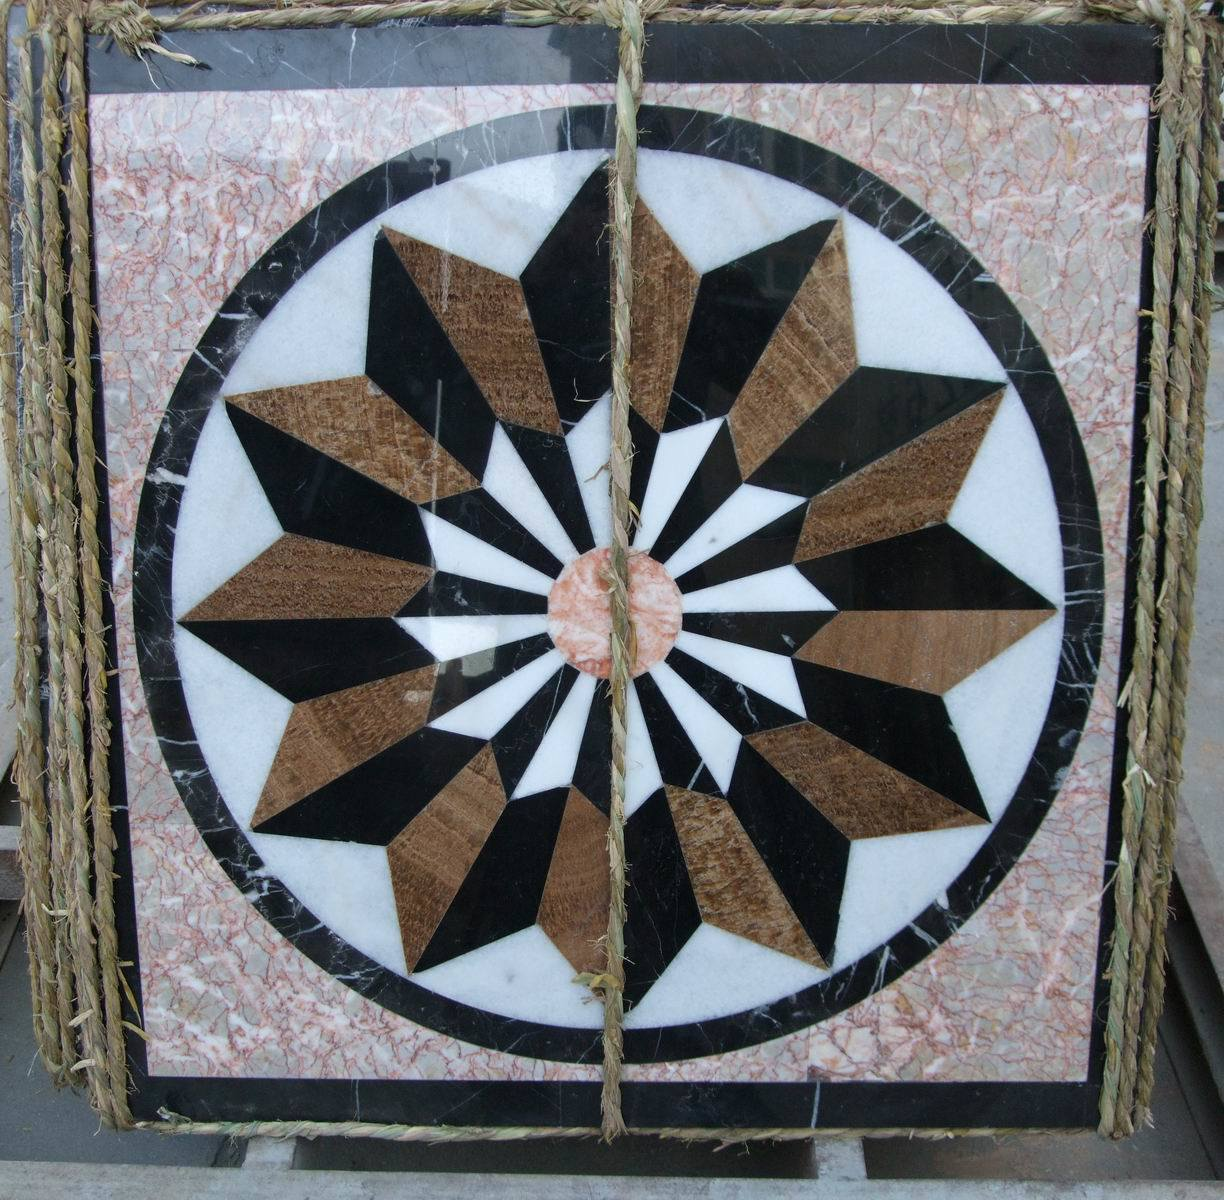 Mosaic Tile Designs in Ceramic Glass & Porcelain - Pool Floor